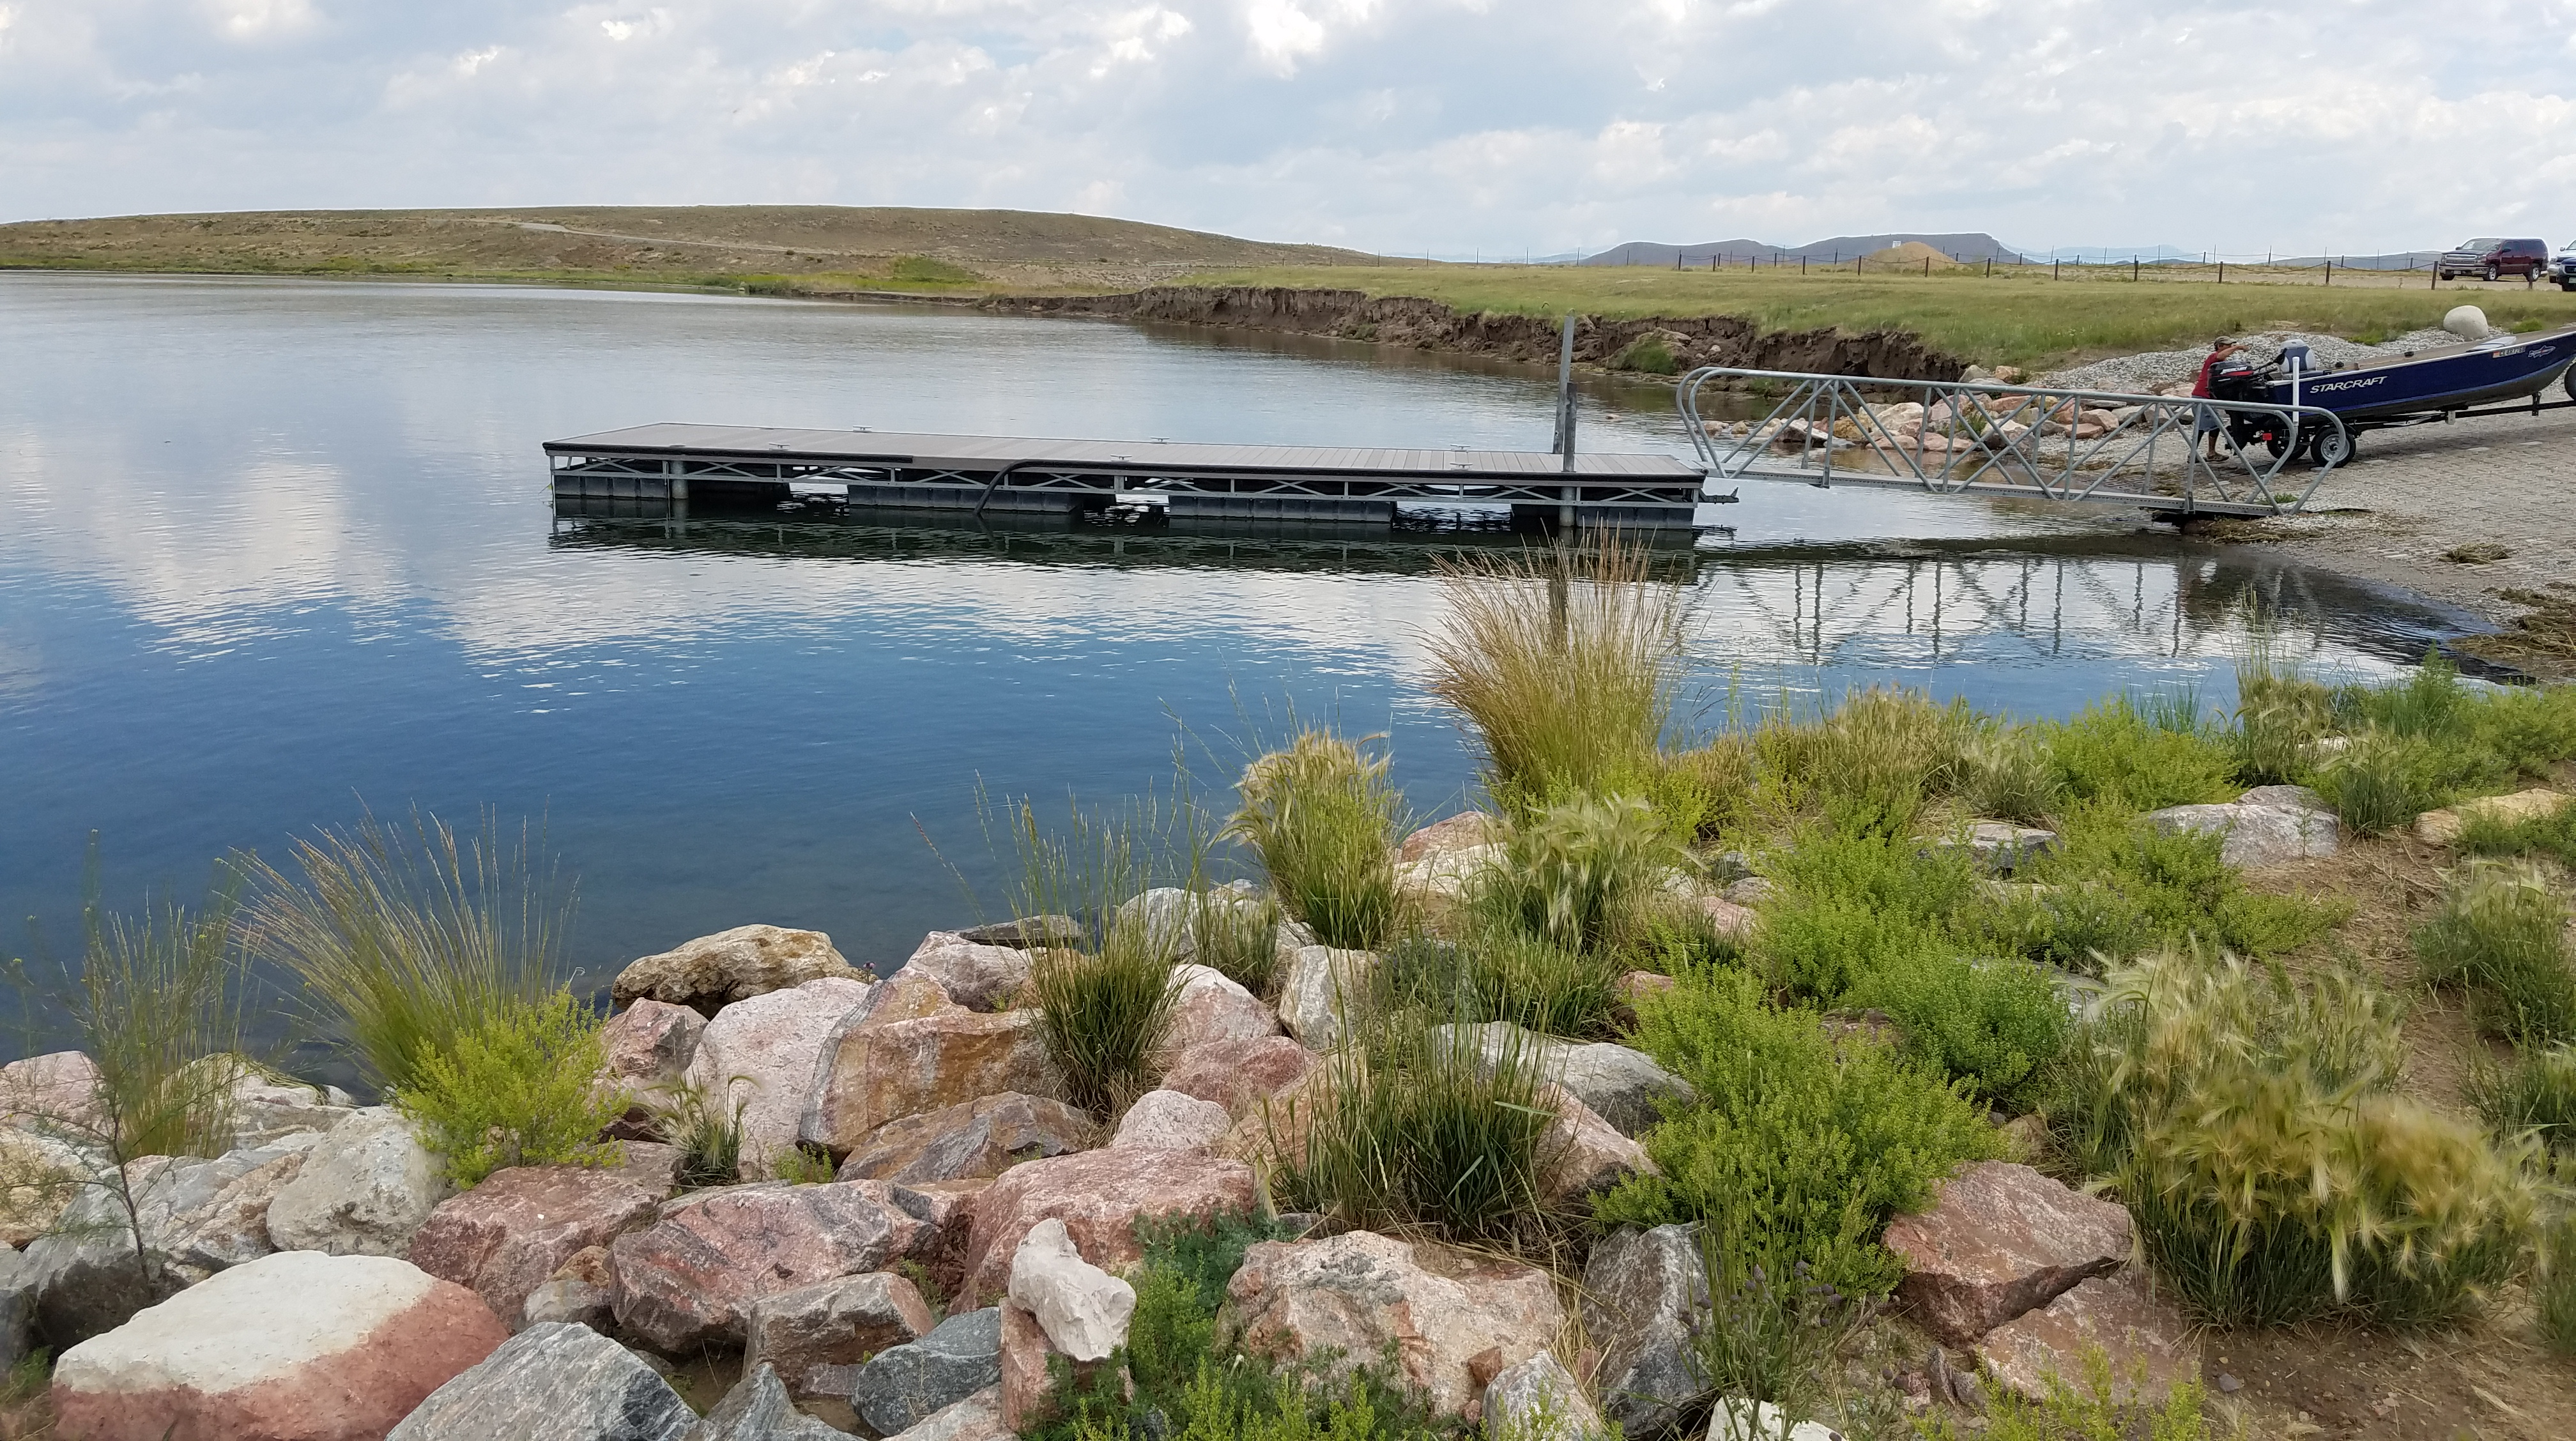 Dock at Antero Reservoir south of the free campsites